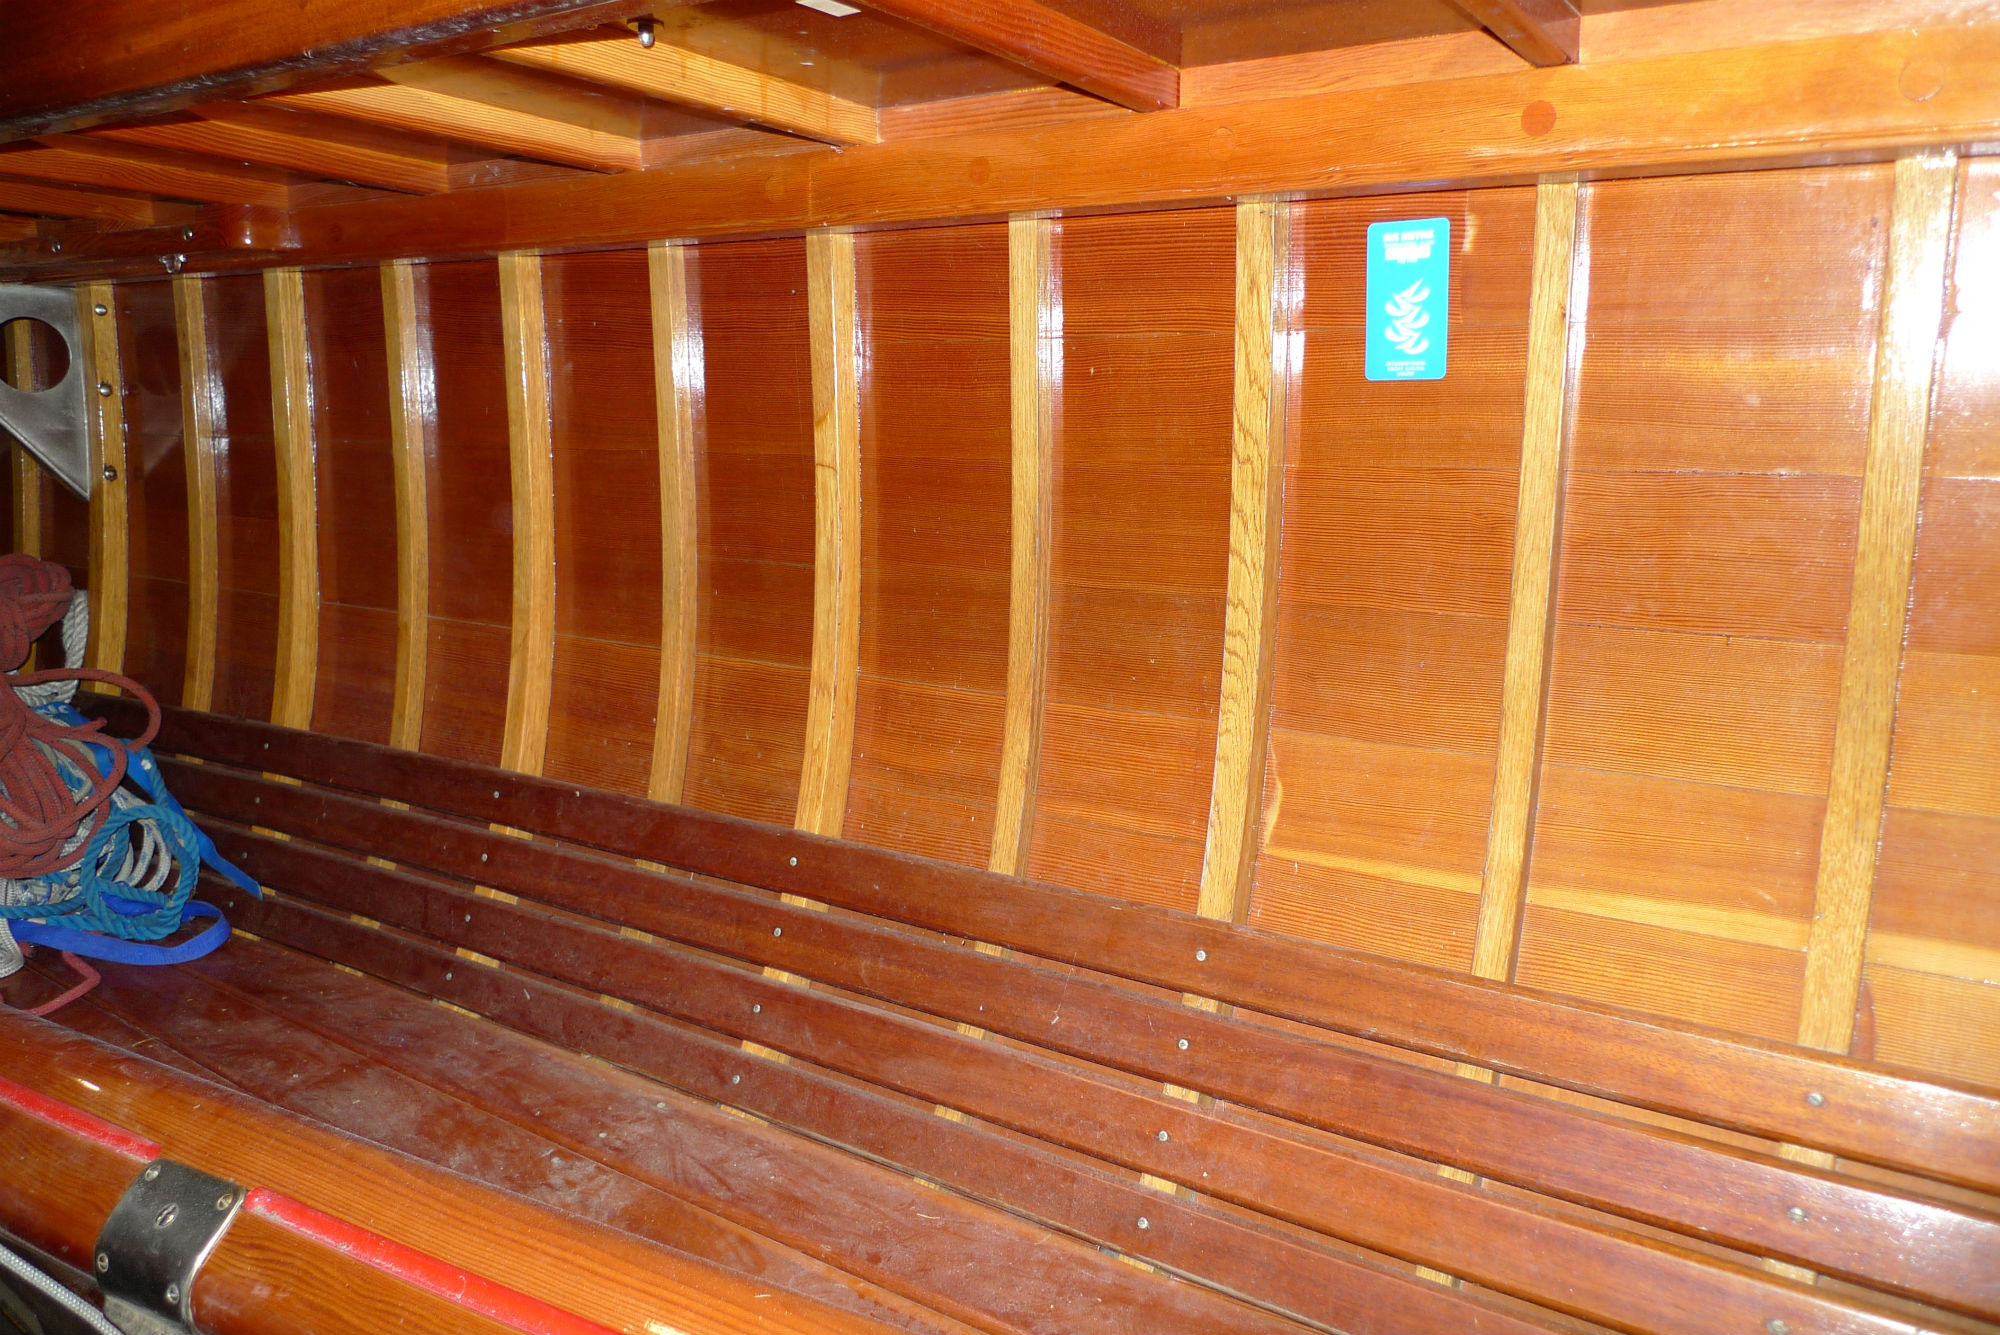 PIcture of the inside of a wooden boat